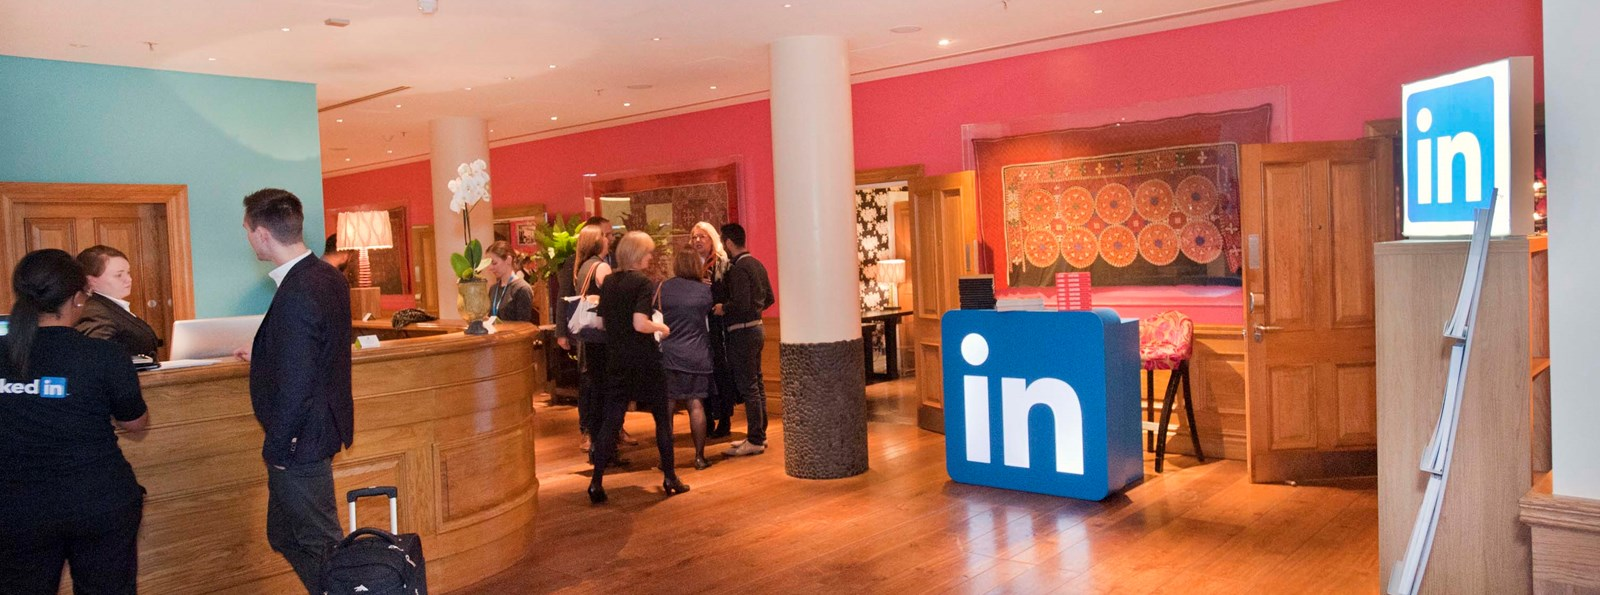 LinkedIn Tech Connect Event at Soho Hotel